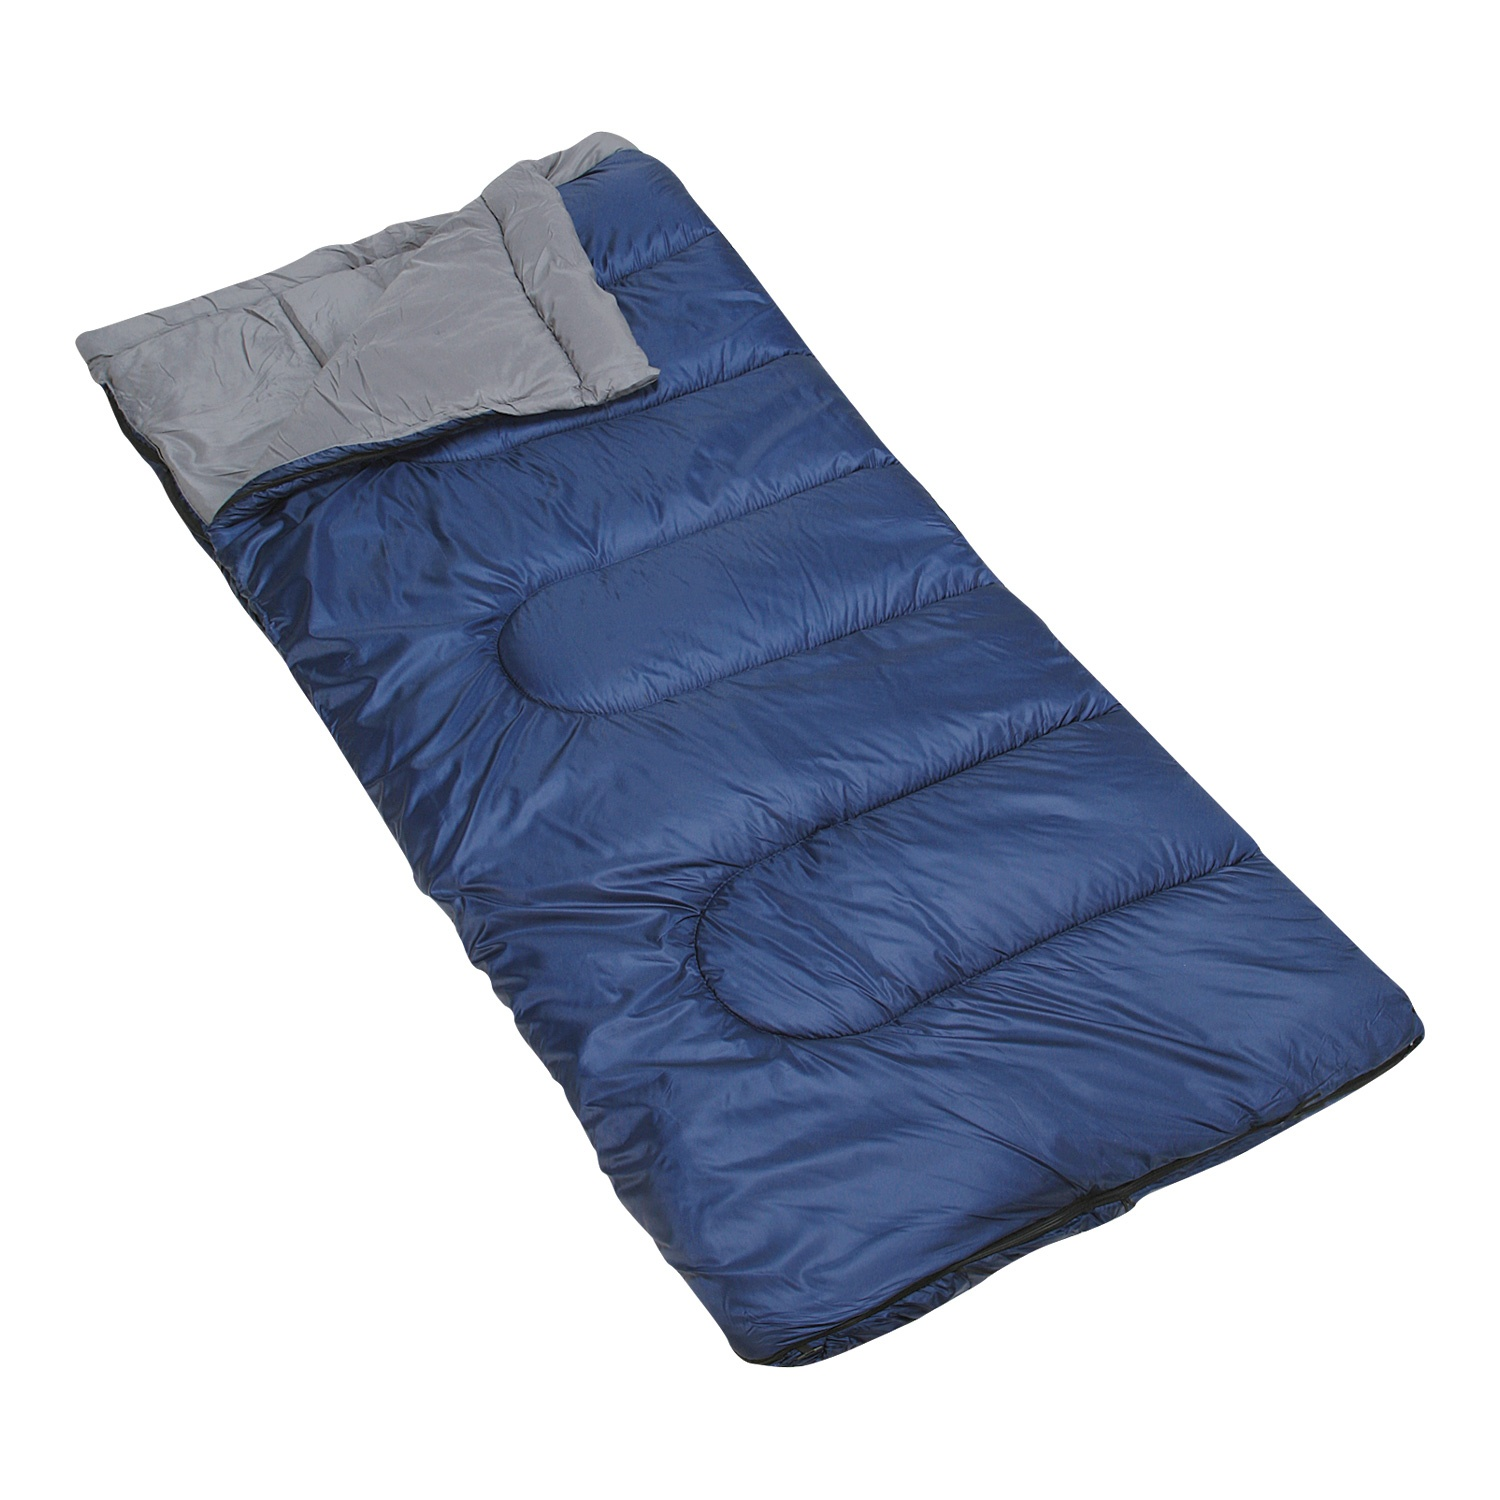 Picture Of Sleeping Bag